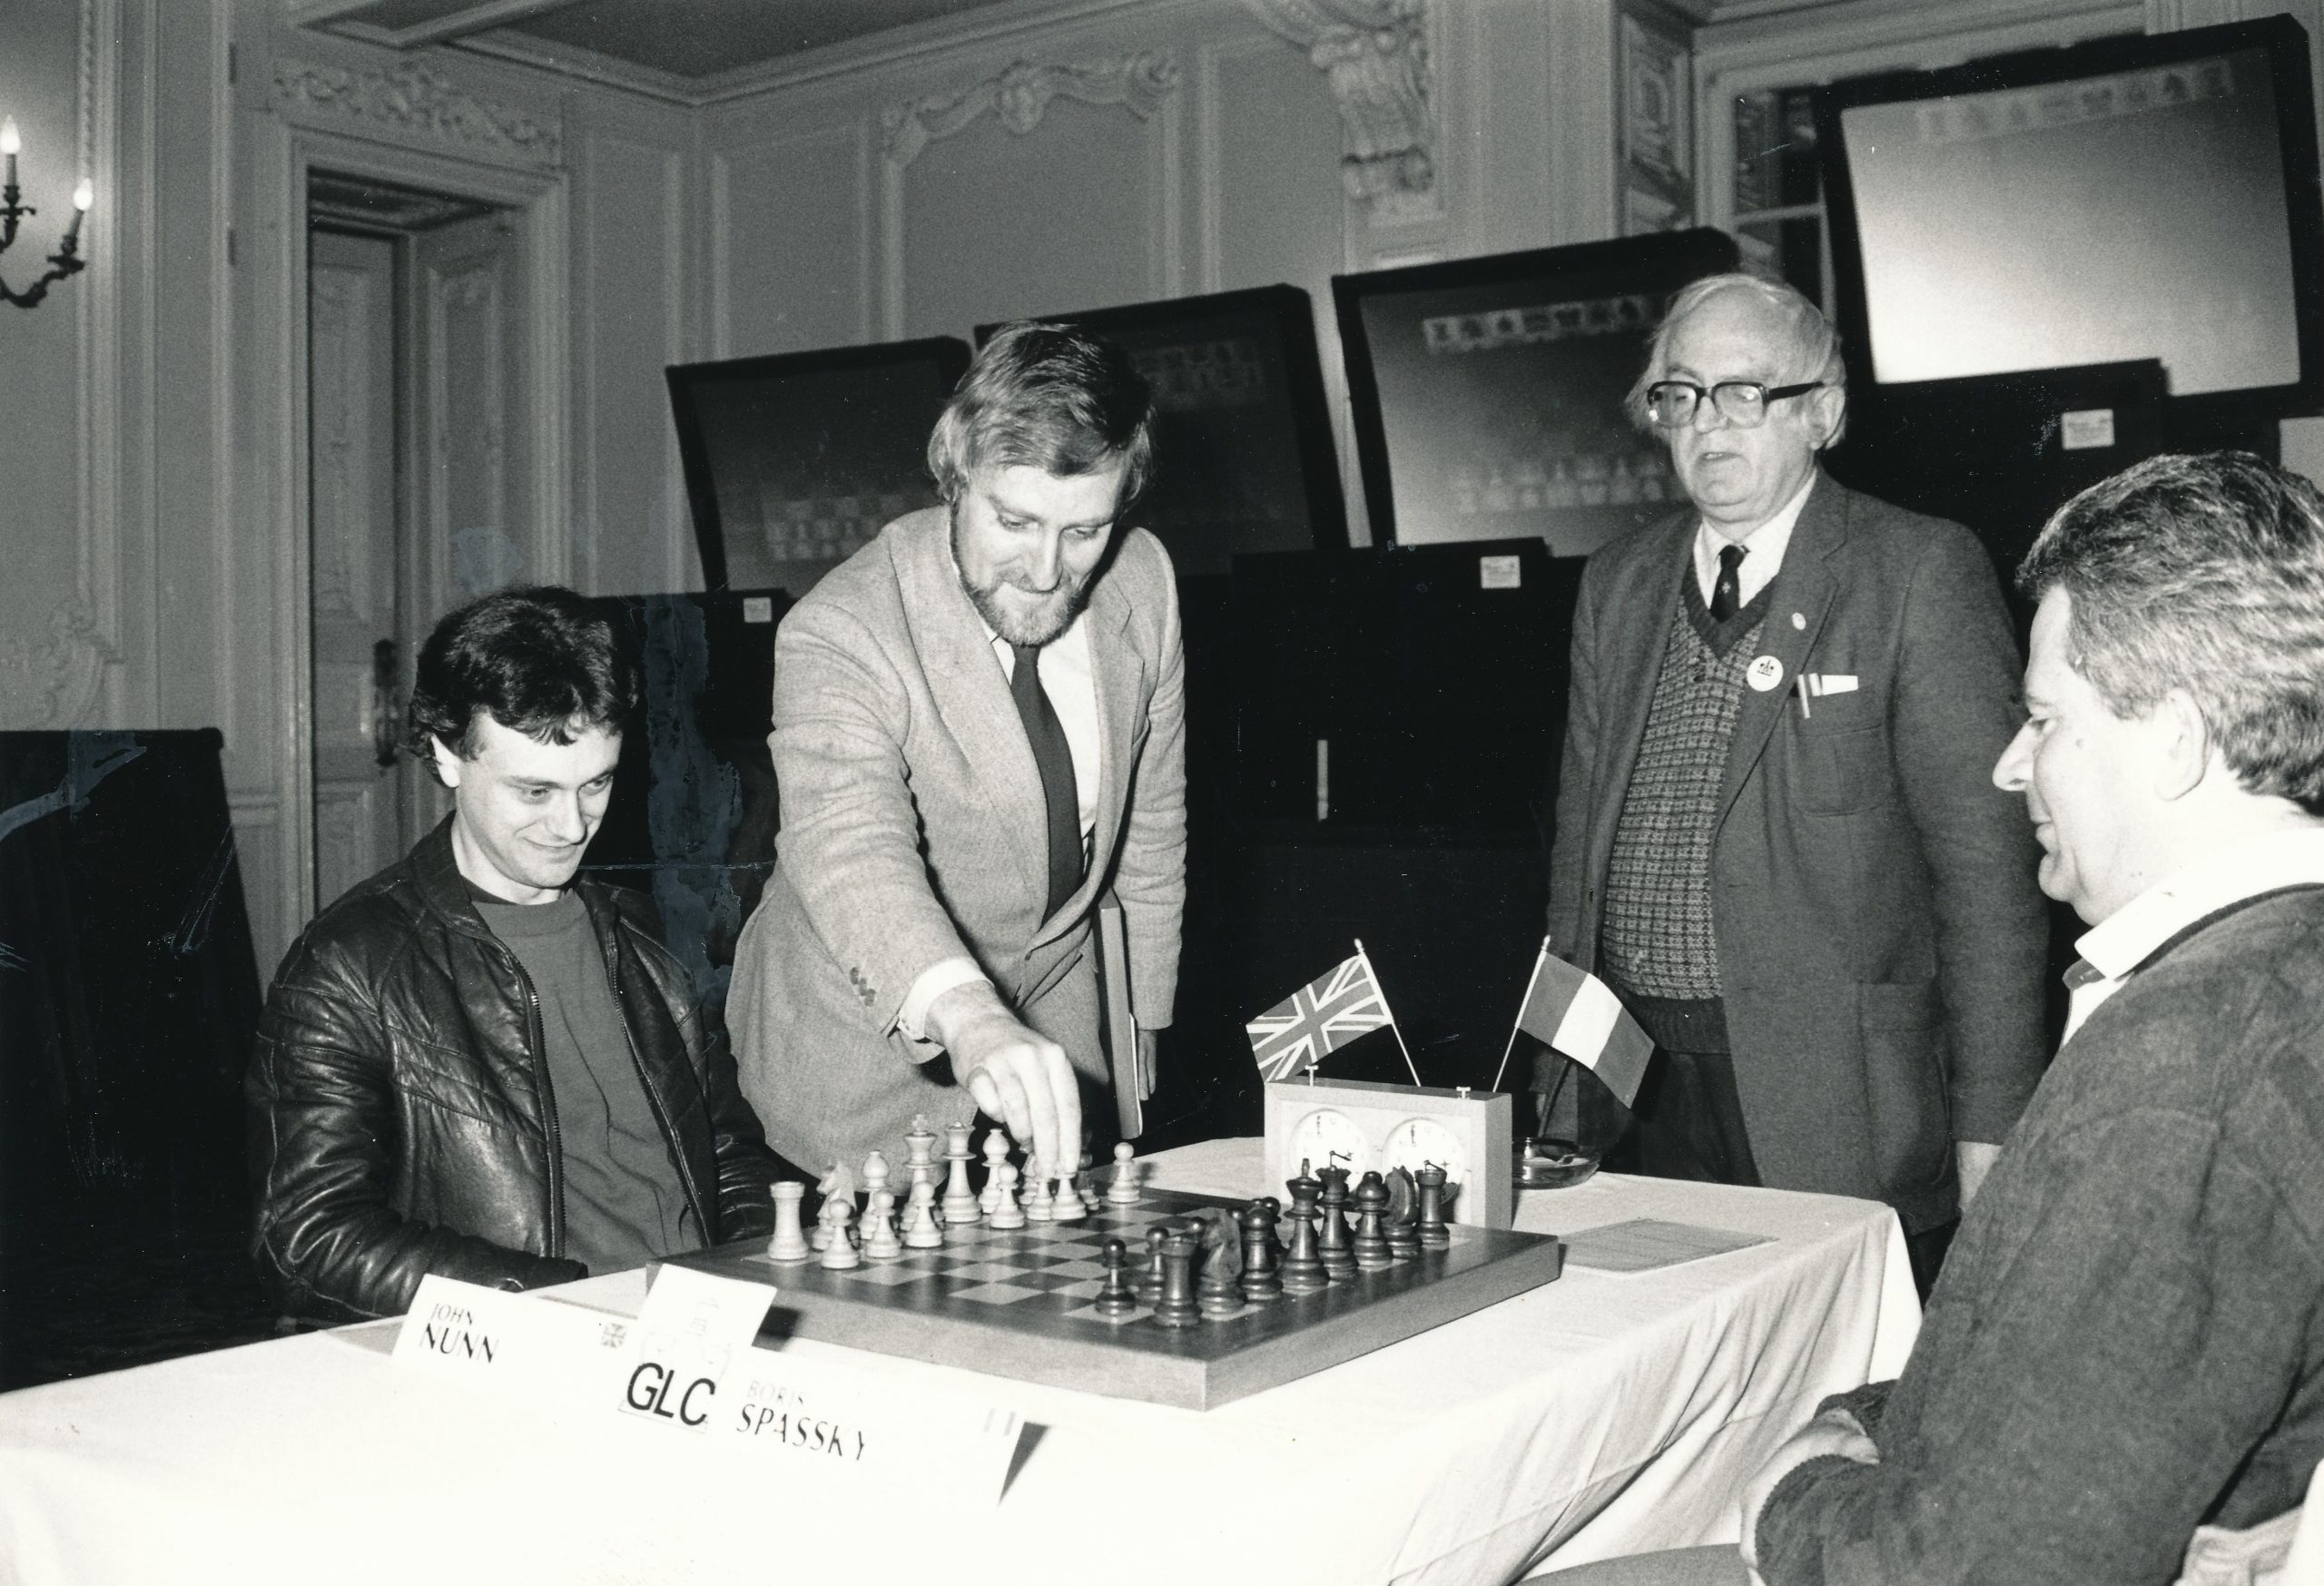 Bob with John Nunn and Boris Spassky at the GLC Masters